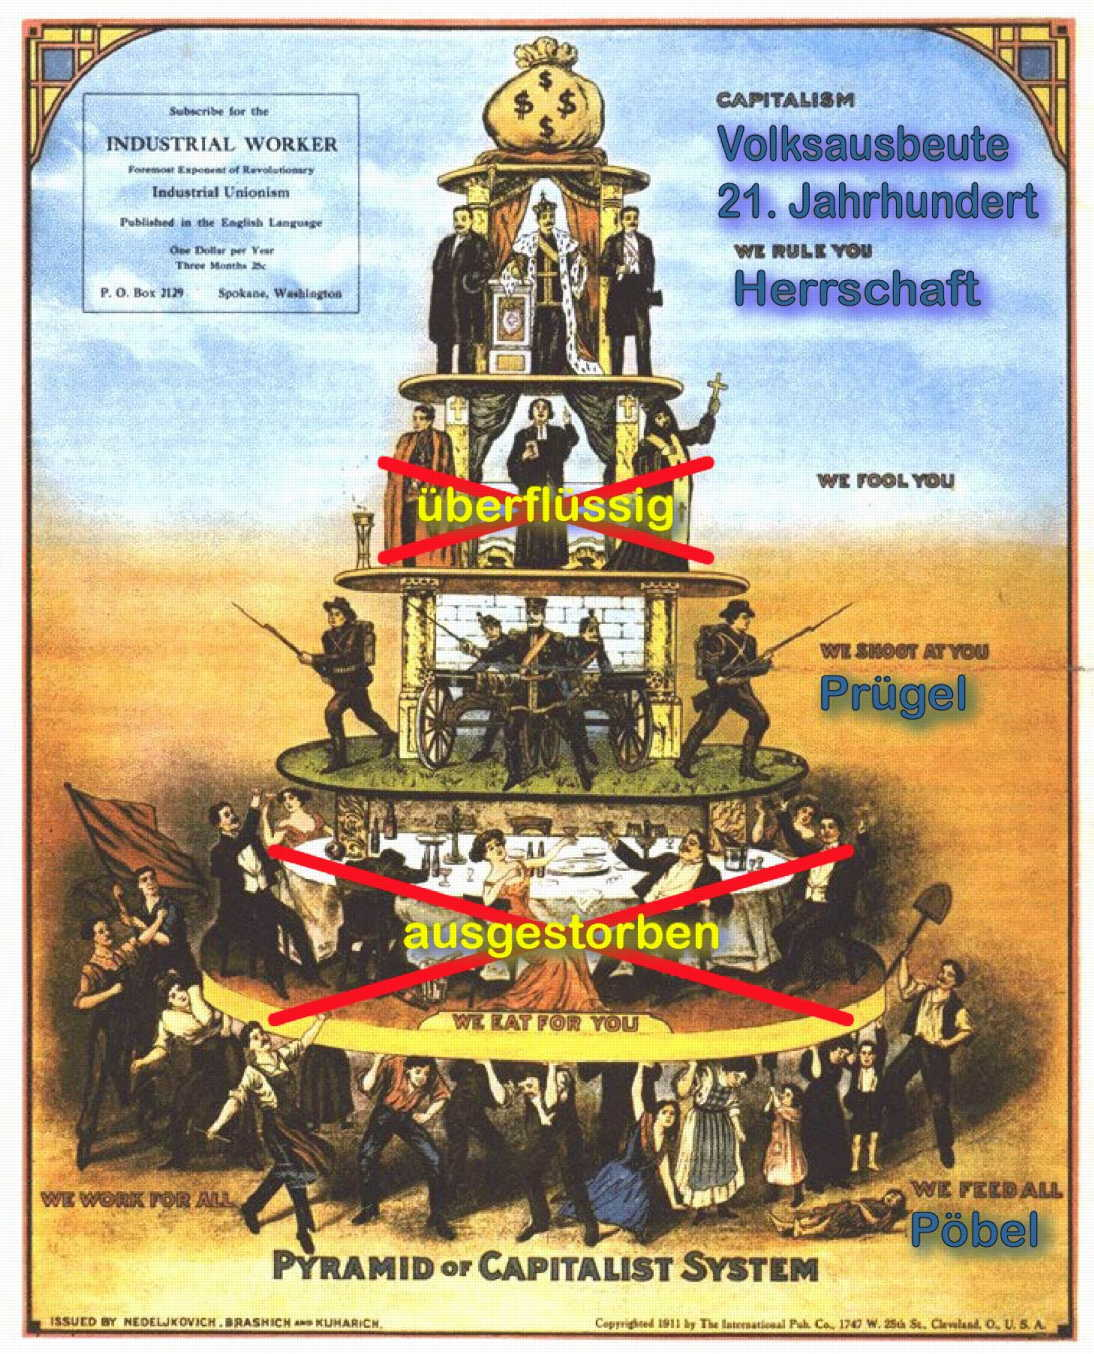 Optimierung der Volksausbeute Volksausbeute heute<br><small>Quelle Original: https://secure.wikimedia.org/wikipedia/de/wiki/Datei:Pyramid_of_Capitalist_System.png</small>